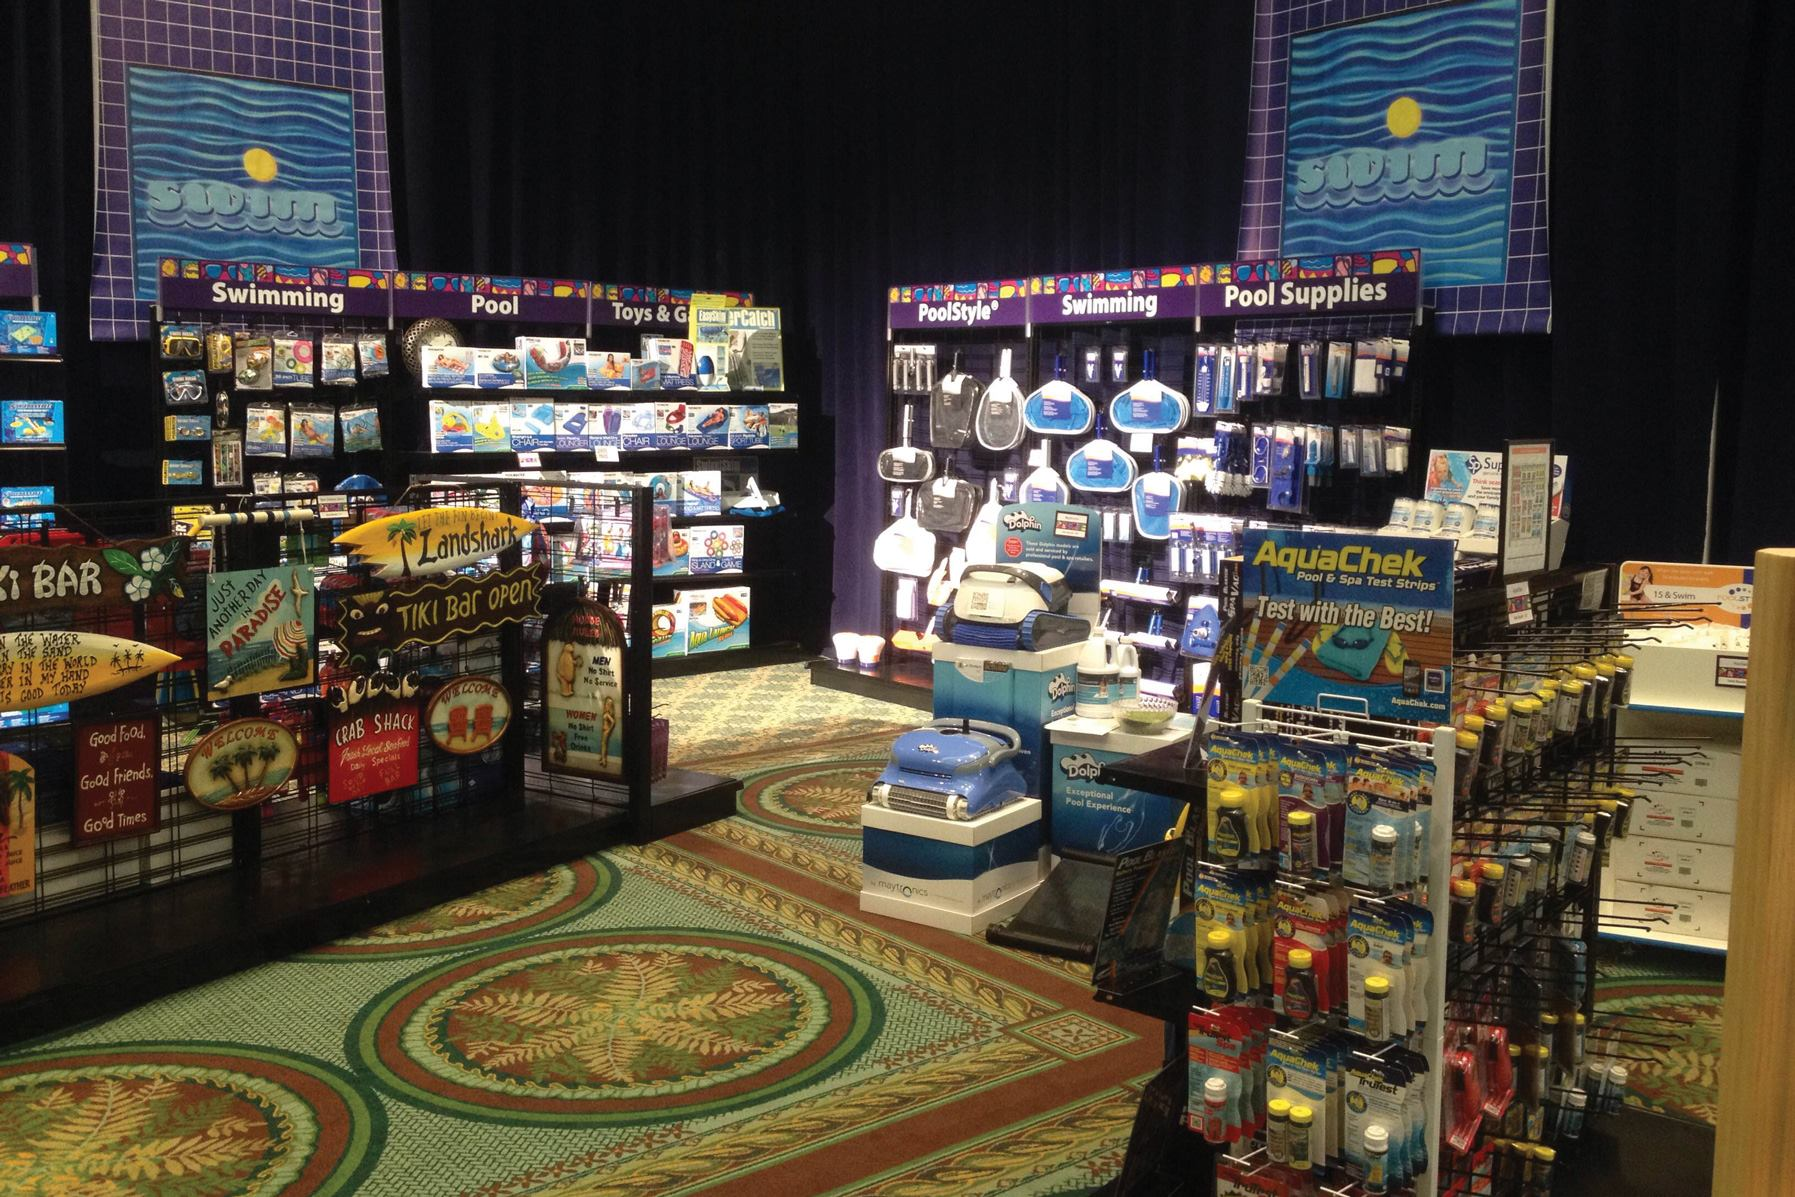 model store unveiled at poolcorp summit